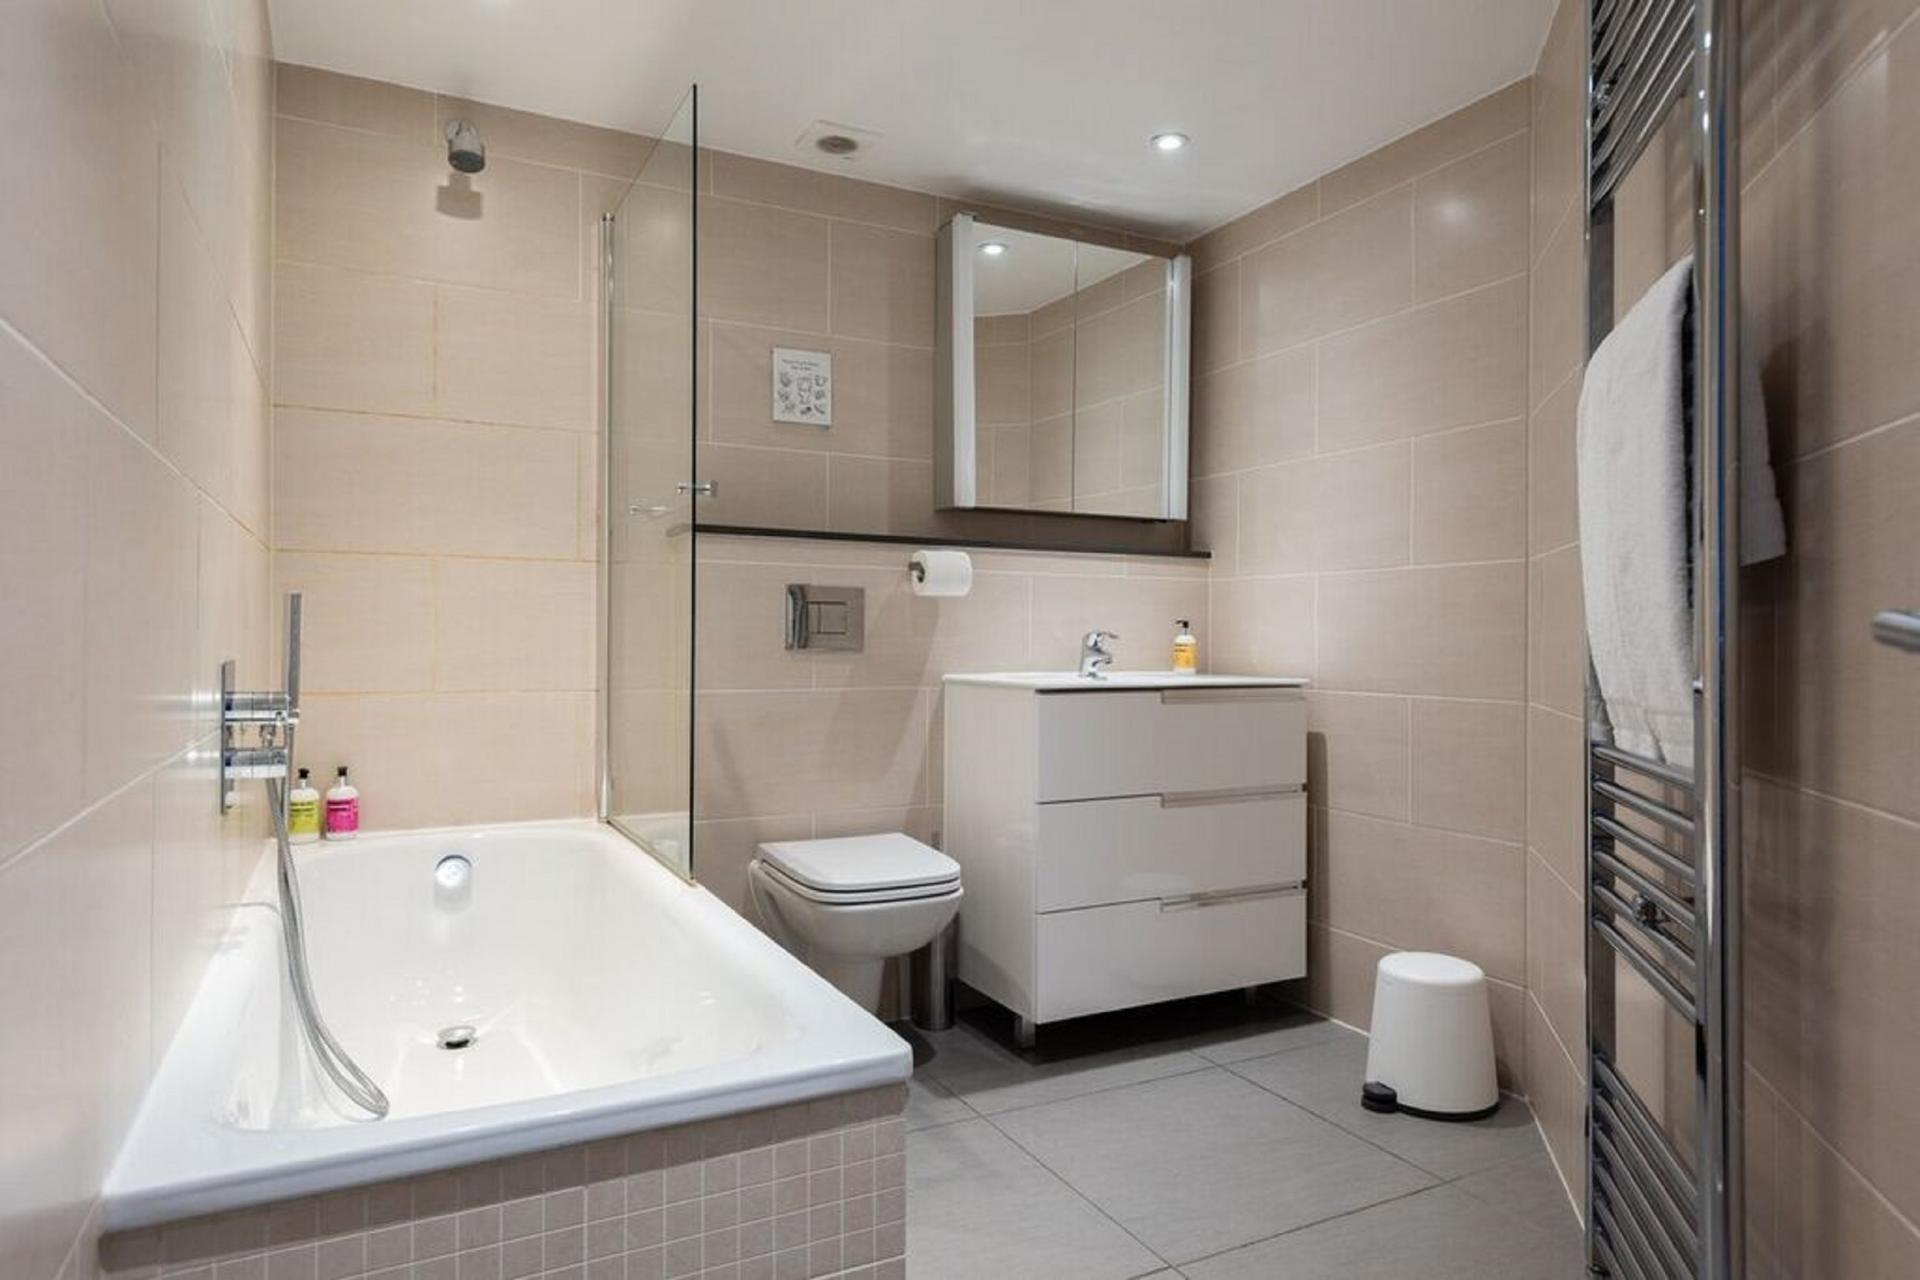 Bathroom at The Paddington Mews, Paddington, London - Citybase Apartments